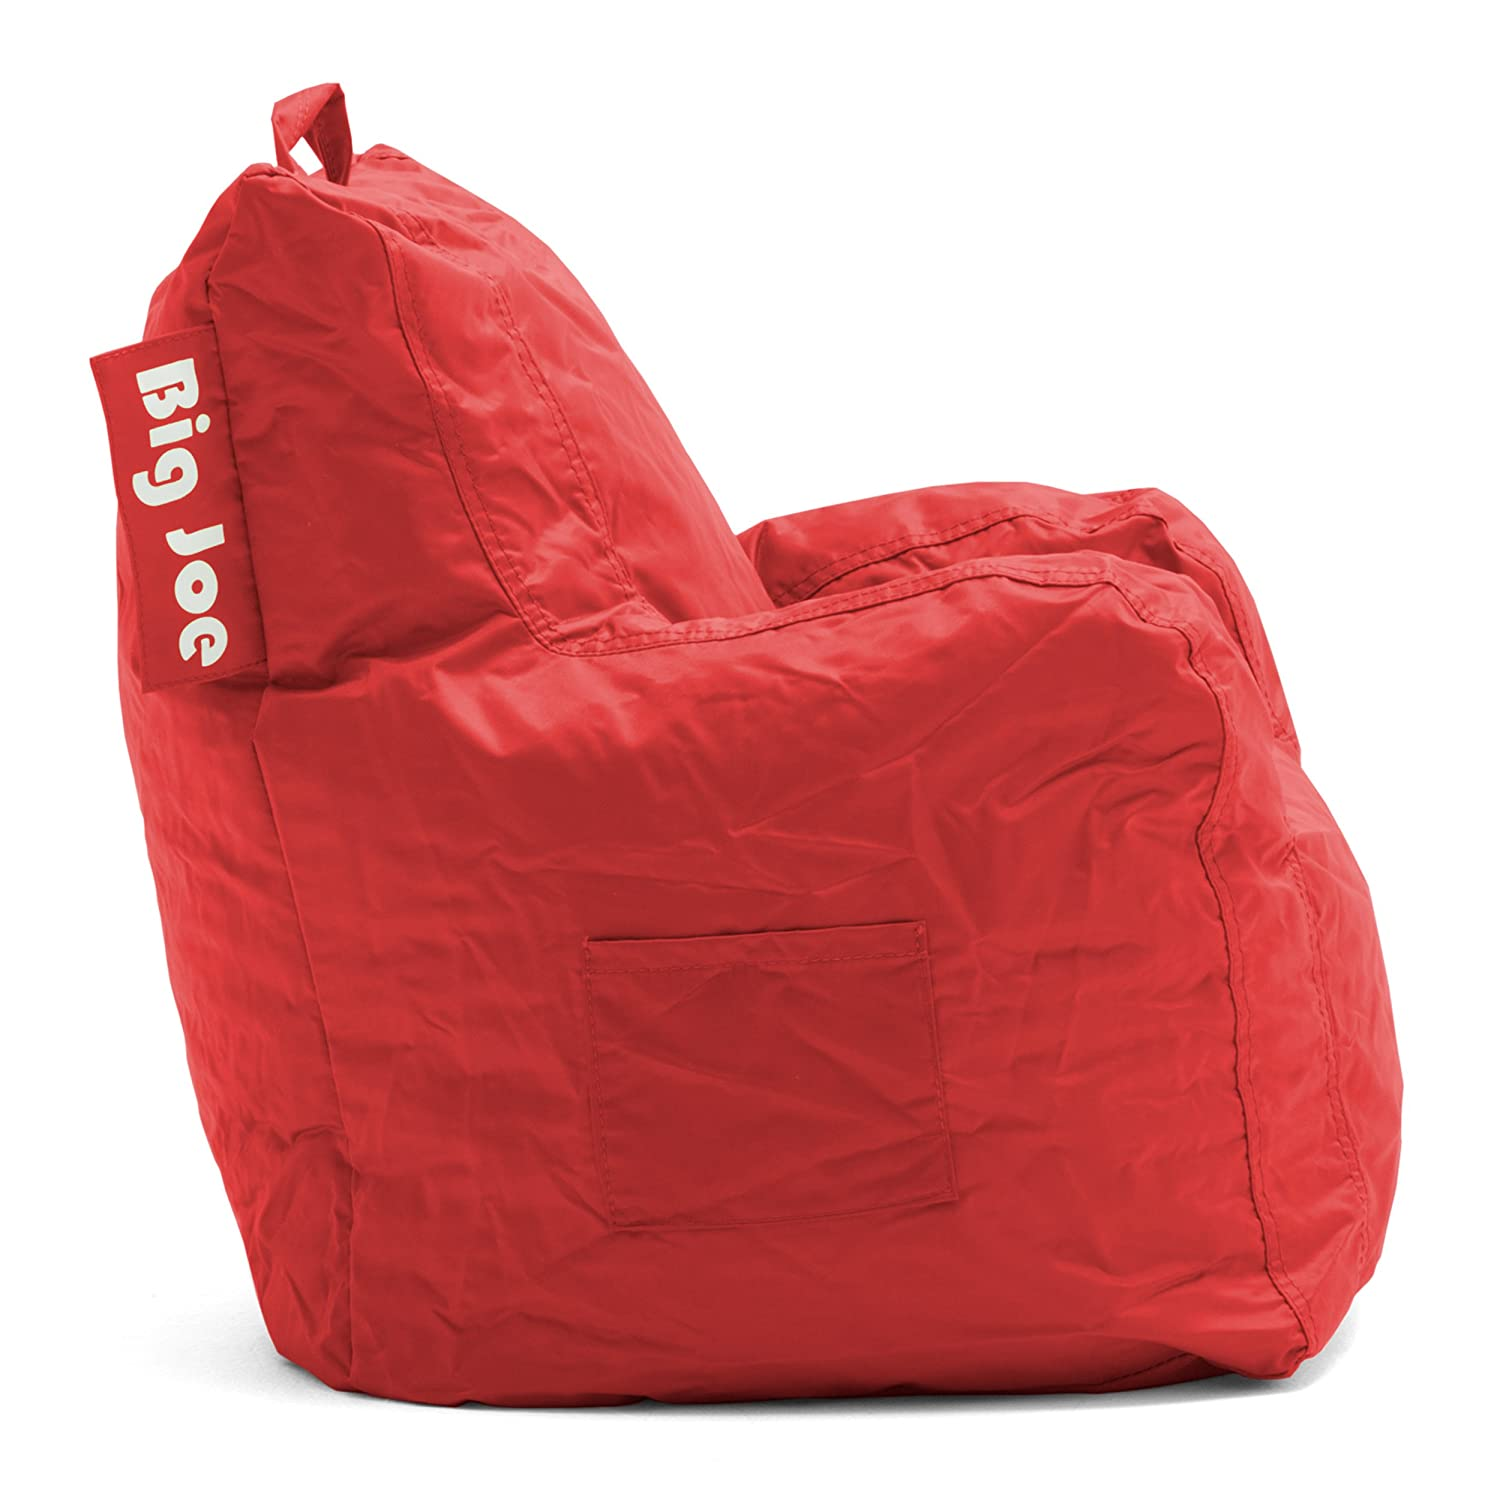 Charmant Big Joe Cuddle Chair, Flaming Red 652613